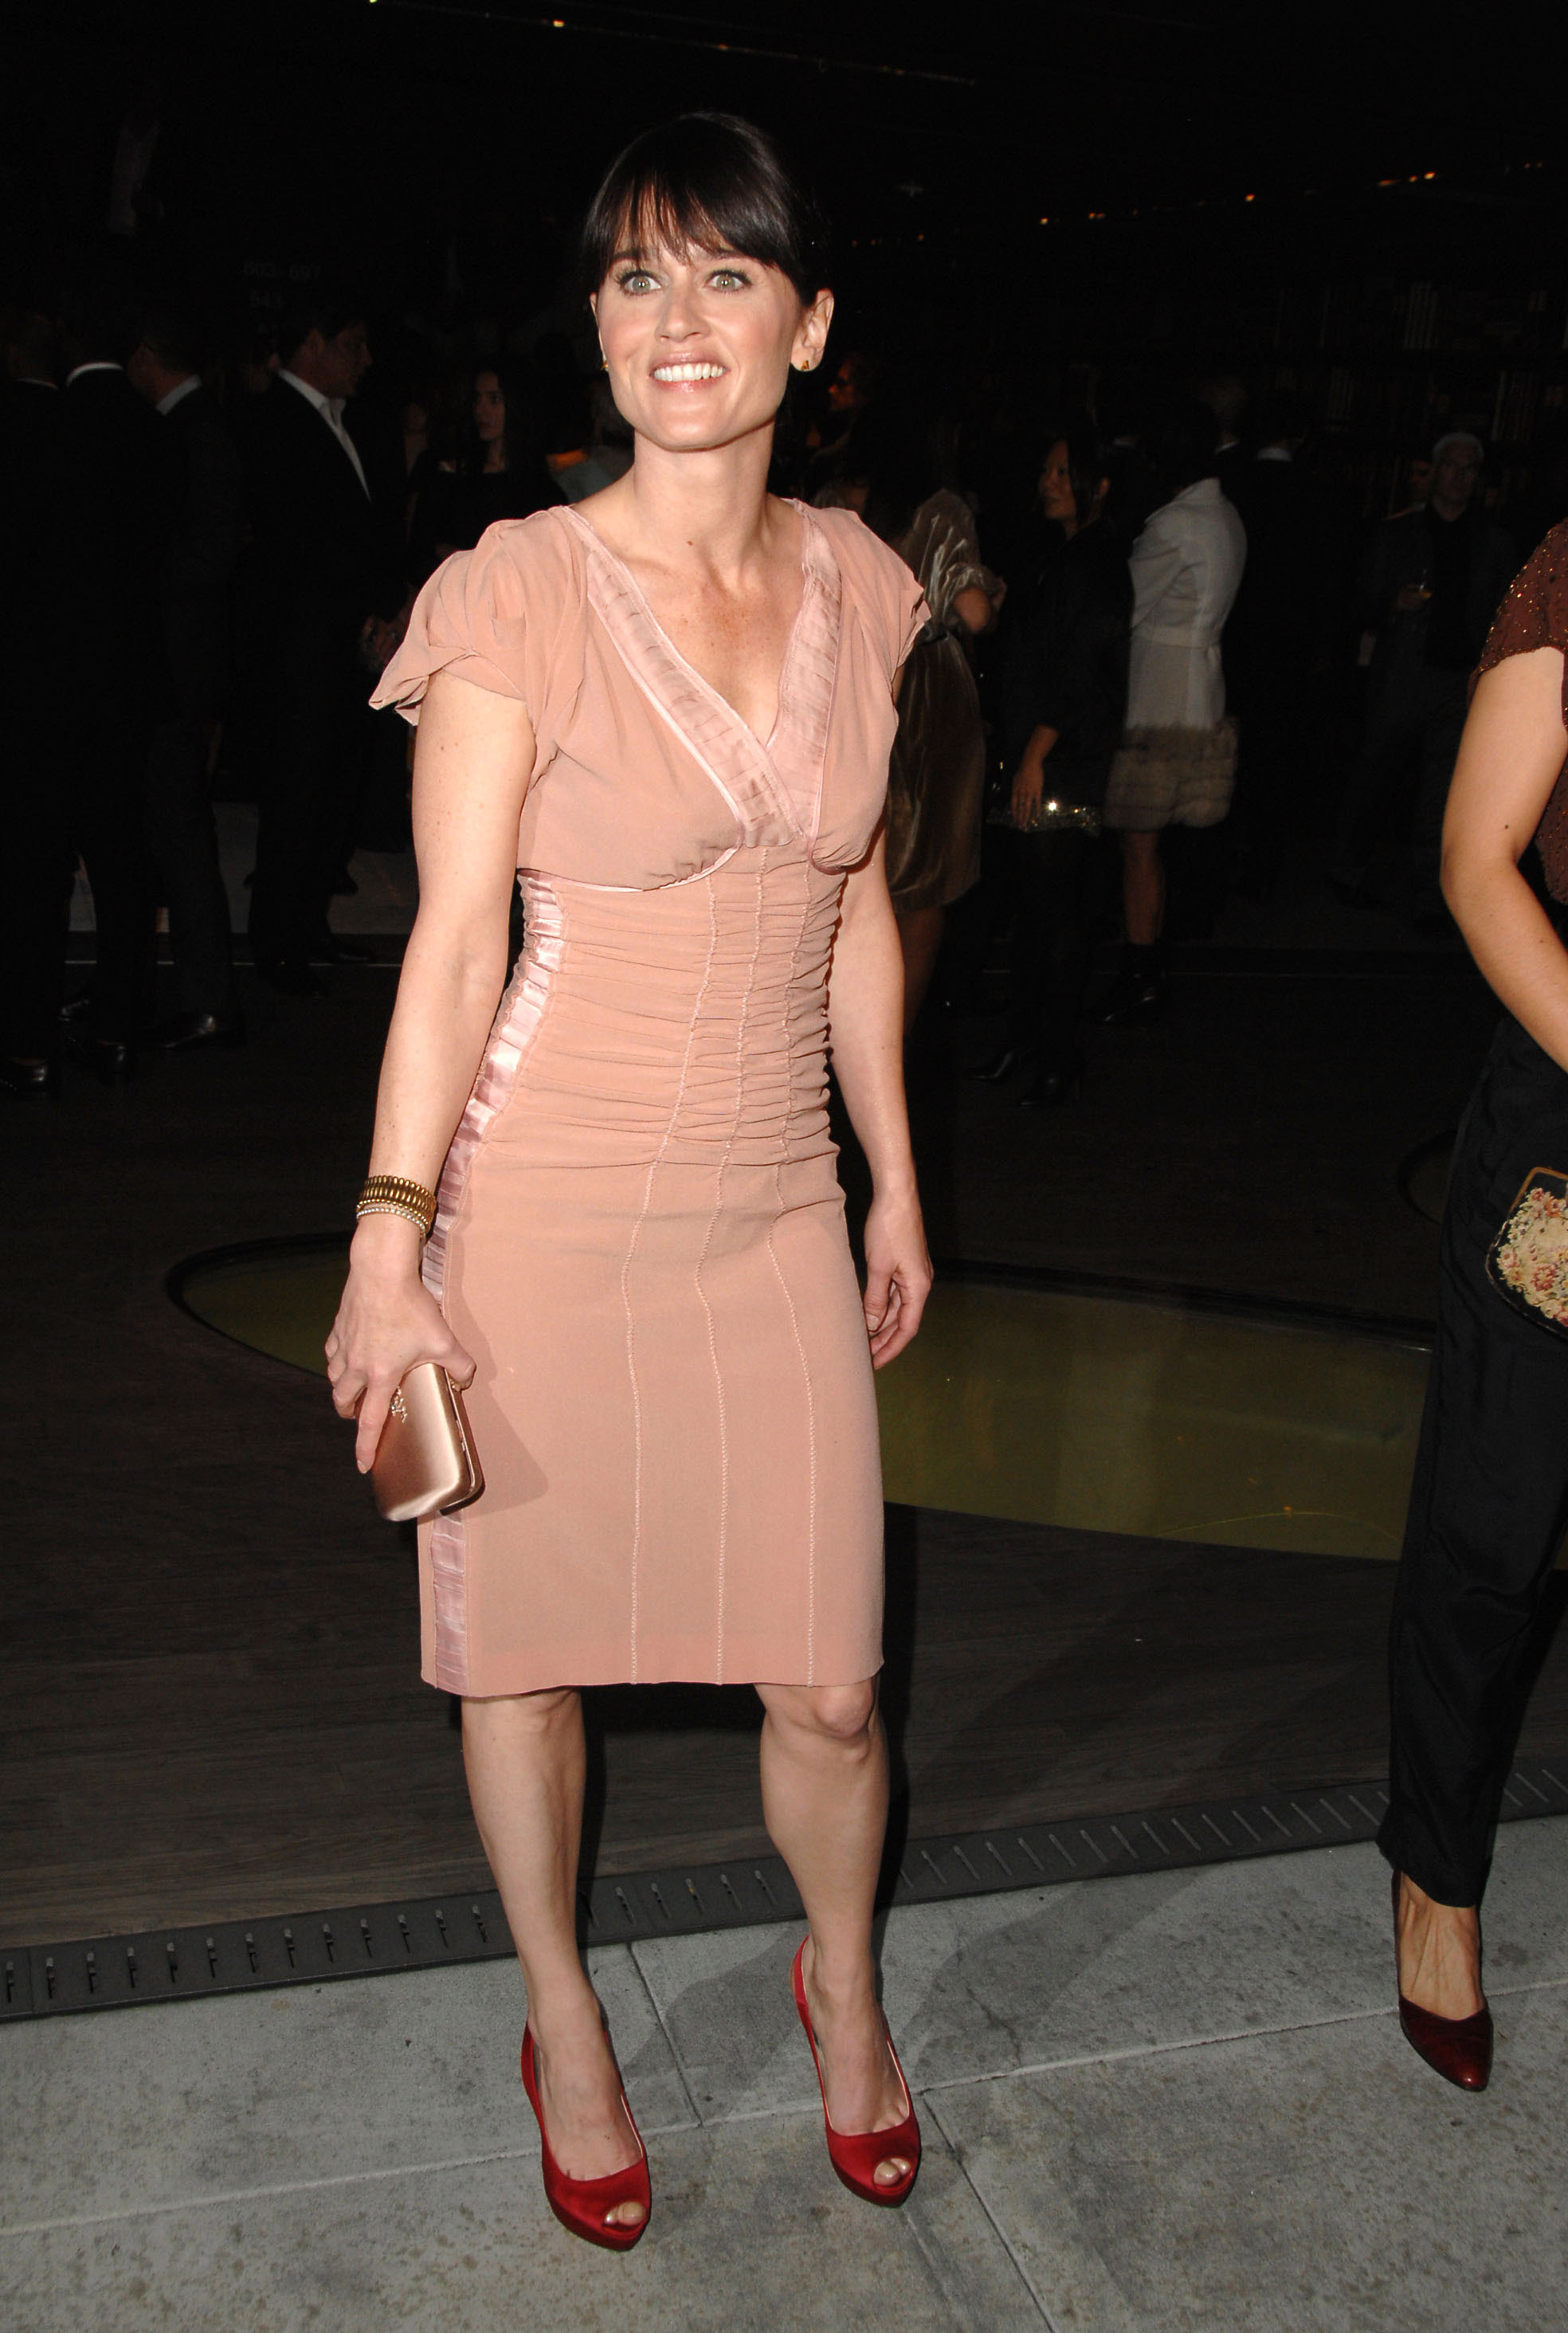 17472_RobinTunney_Prada_Book_Launch_Party_11_122_469lo.jpg